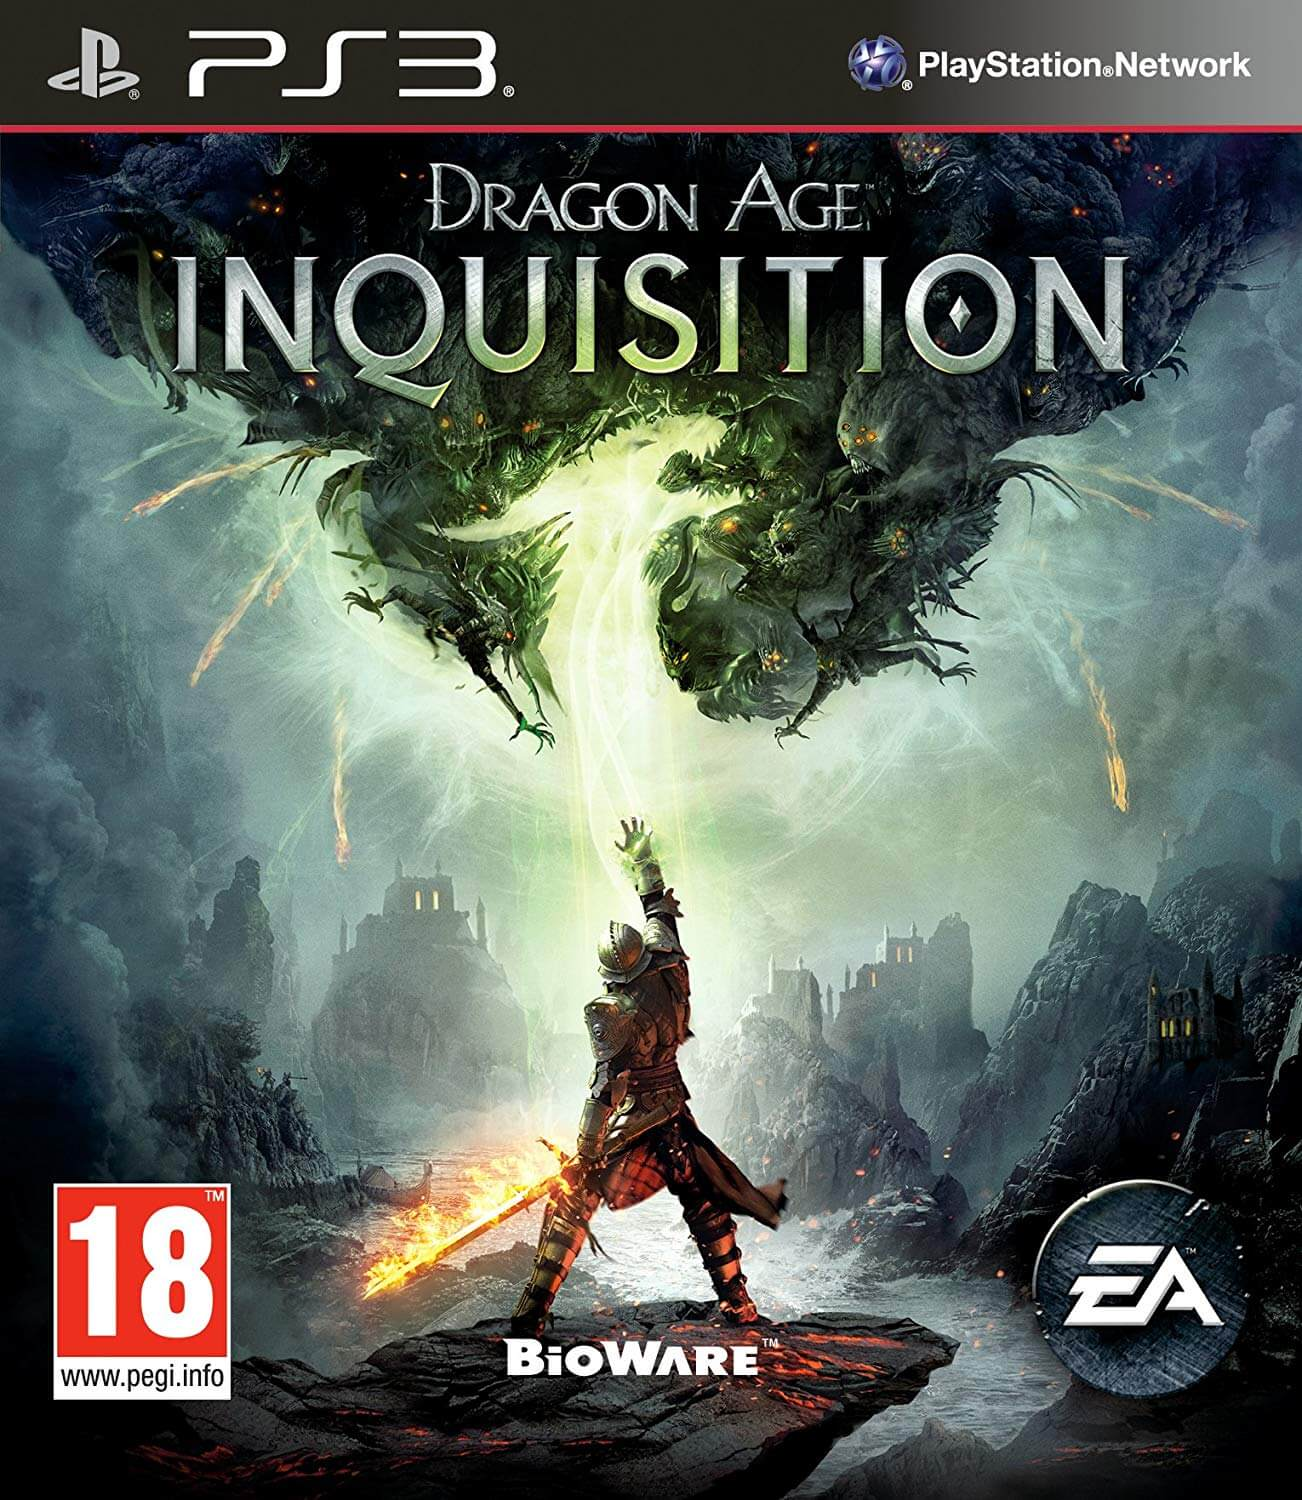 Dragon Age Inquisition Ps3 Iso Rom Playstation 3 Game Download